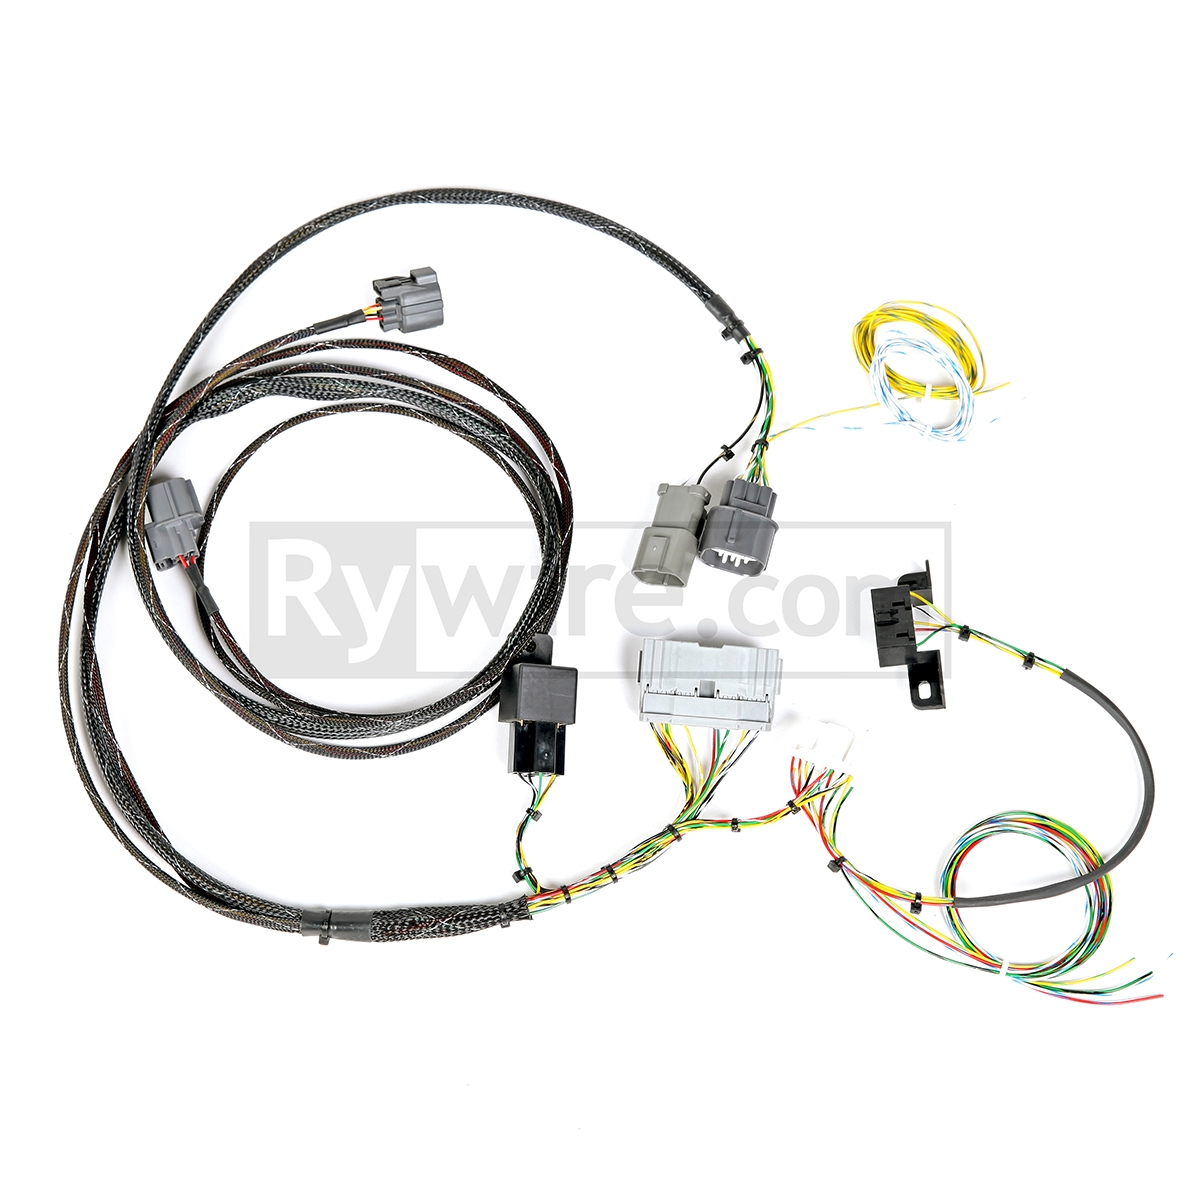 rywire k series chassis adapter K20 Wiring Harness wiring, engine loom, 6mt – jdm of miami